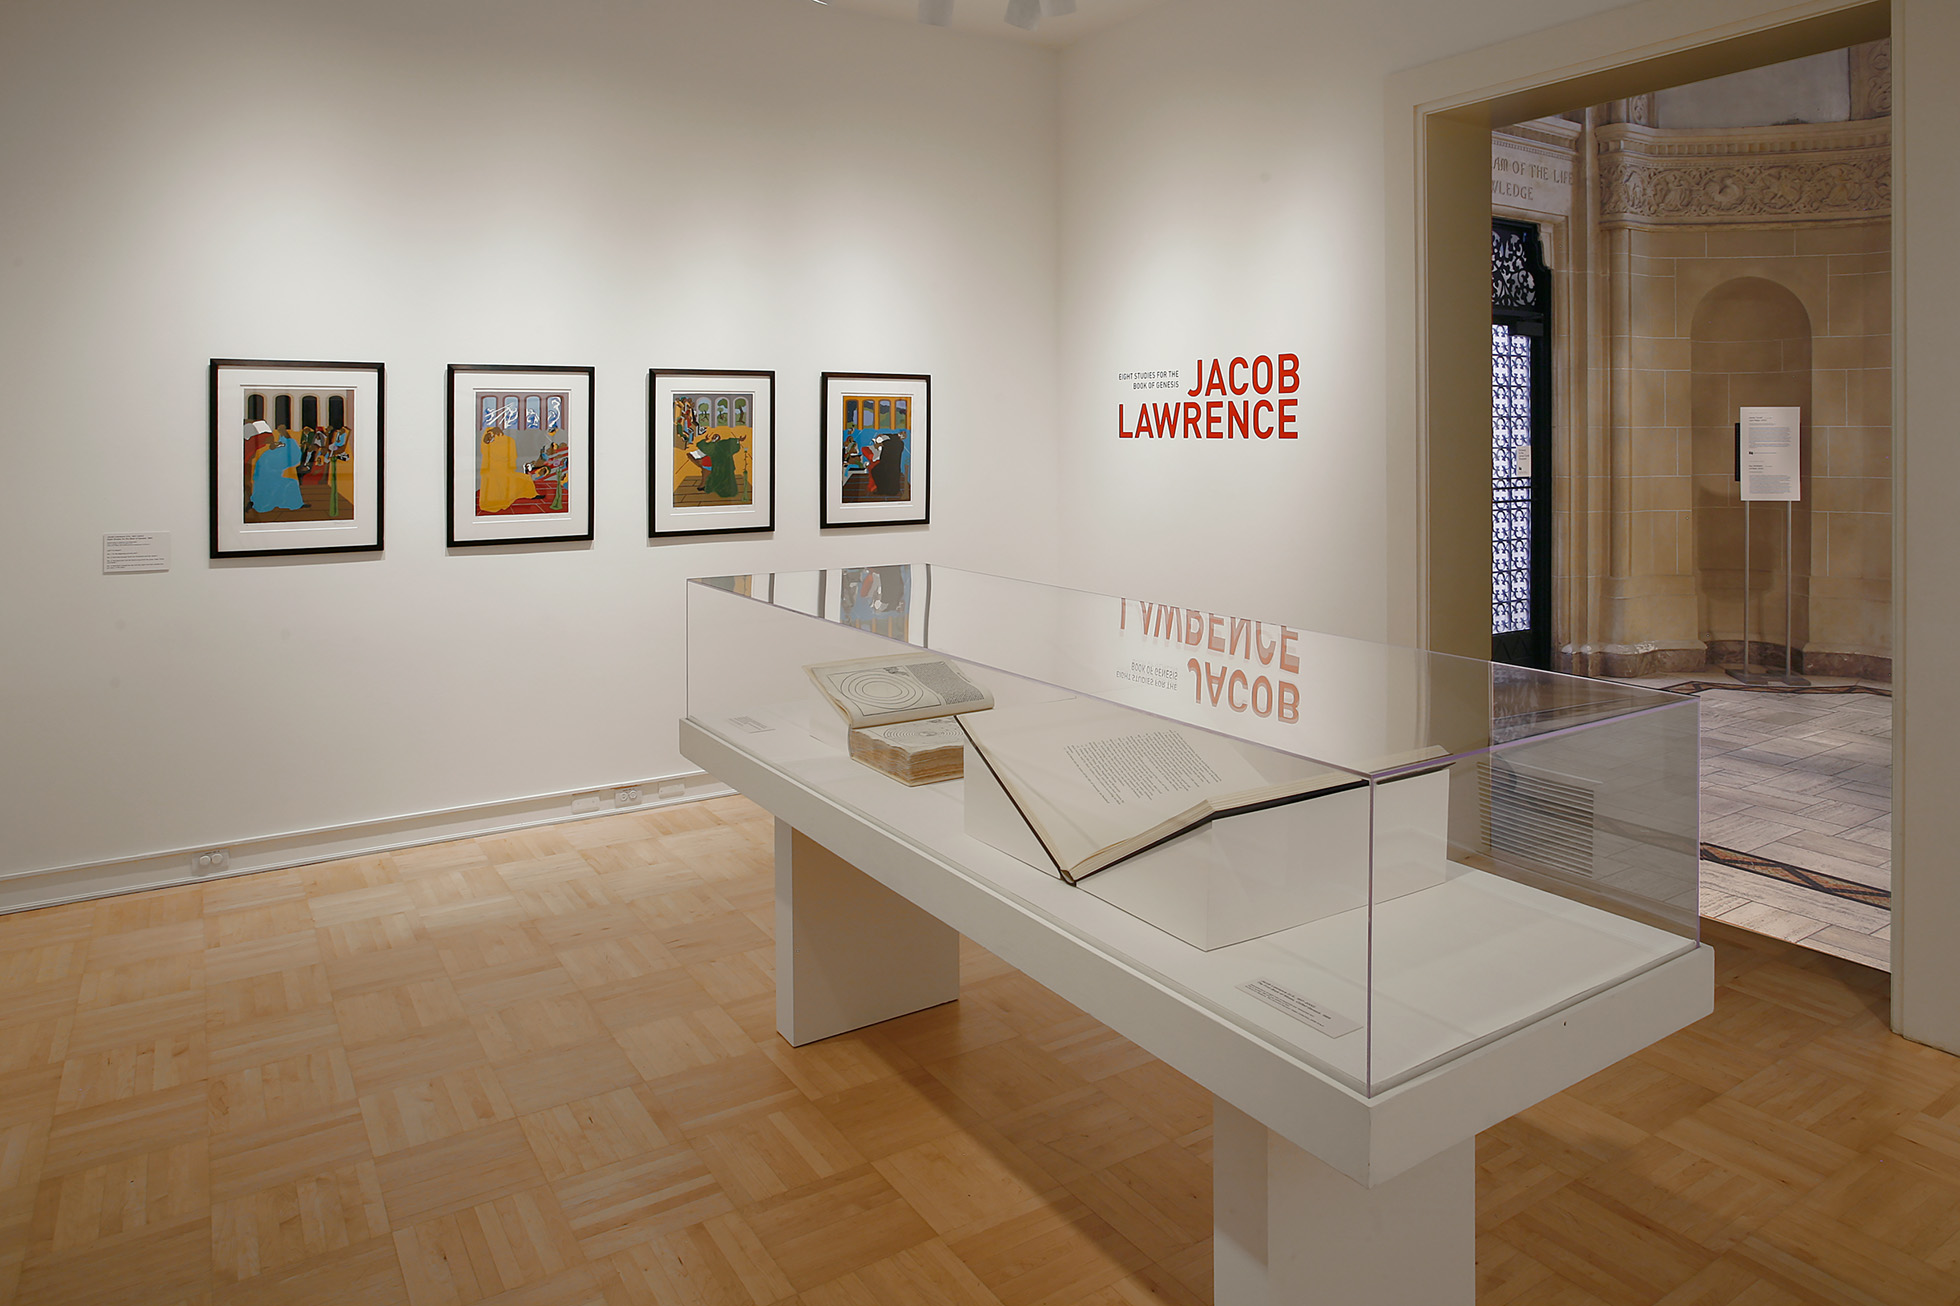 <p><i>Jacob Lawrence: Eight Studies for the Book of Genesis</i> [installation view]. 2017. Henry Art Gallery, University of Washington, Seattle. Photo credit: Mark Woods.</p>